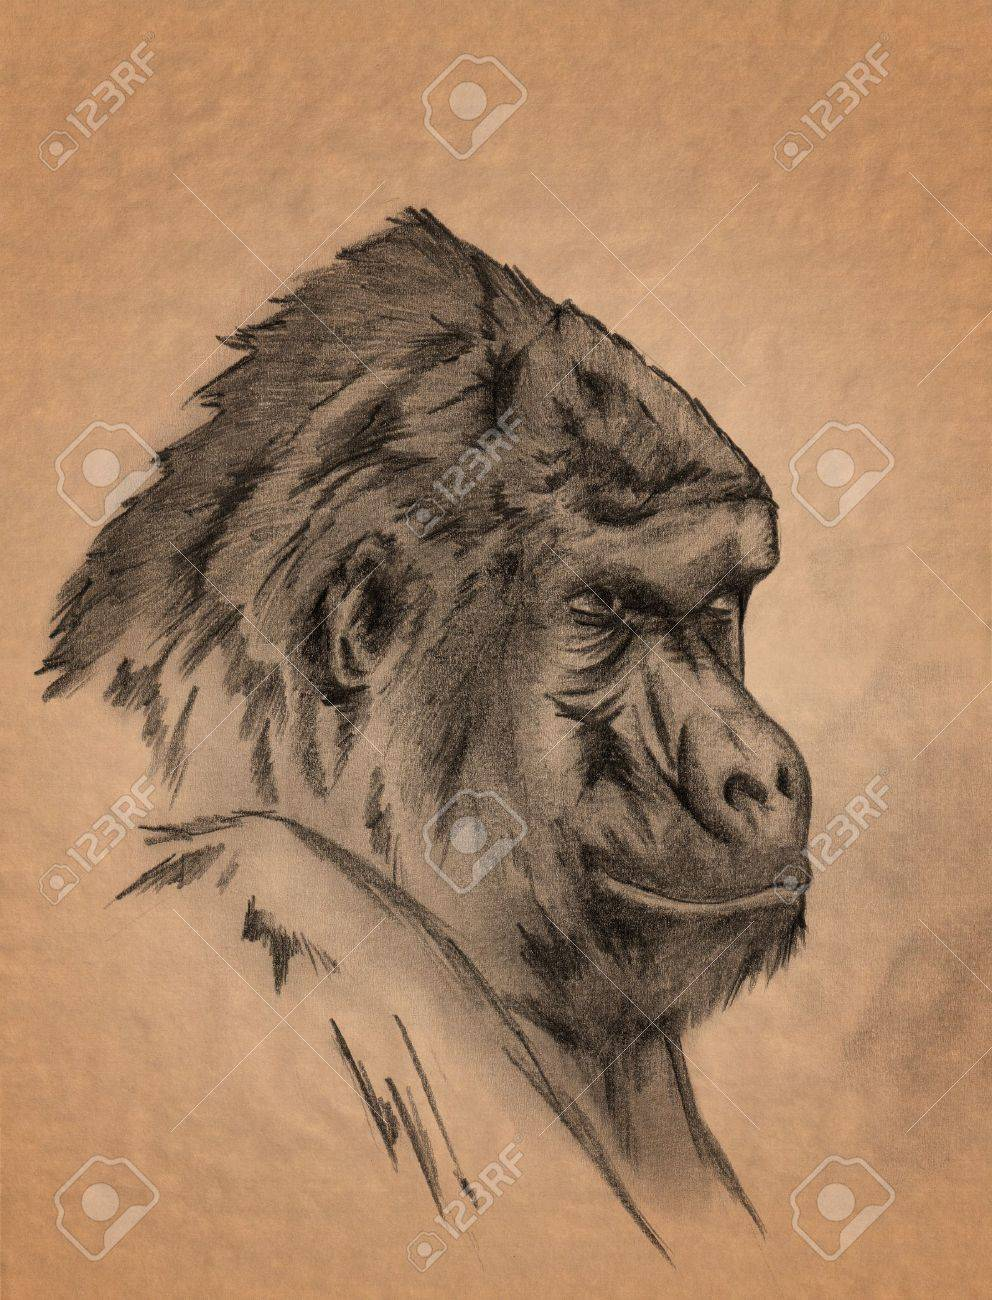 Mountain gorilla portrait freehand sepia toned pencil drawing